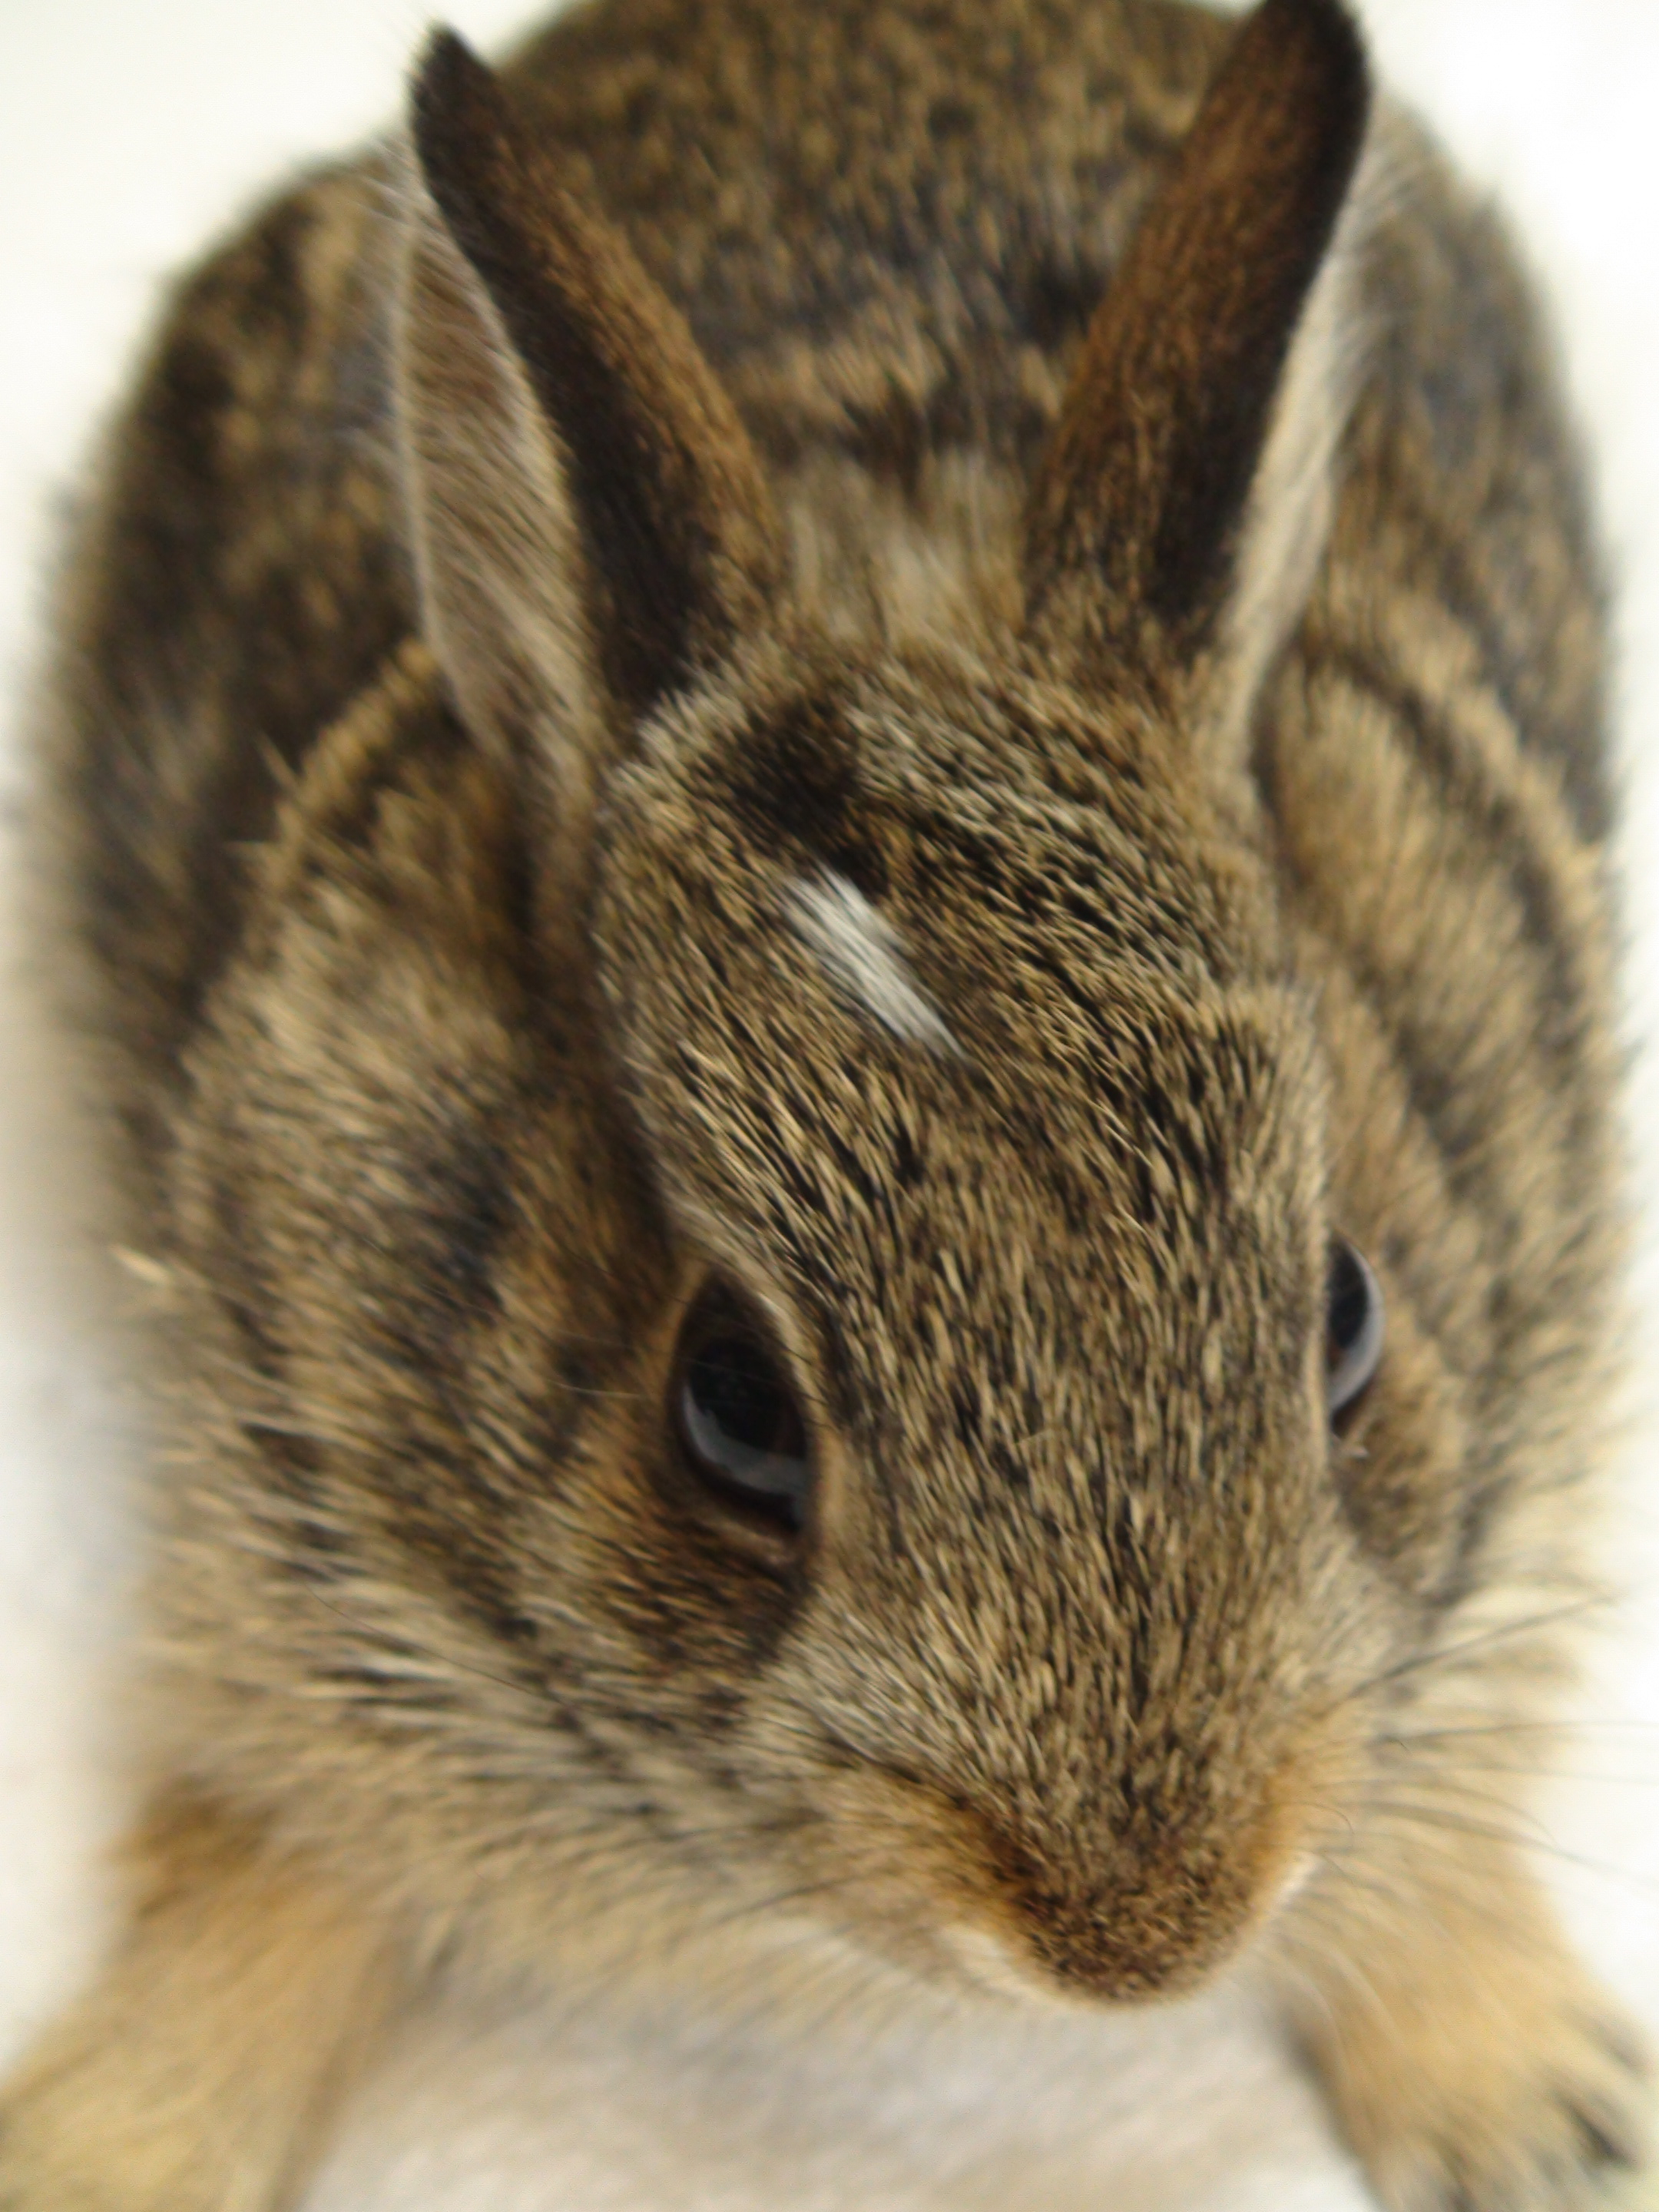 This very young rabbit has his eyes open and ears up. If found outside the nest, he is ready to go out on his own, regardless of his small size.